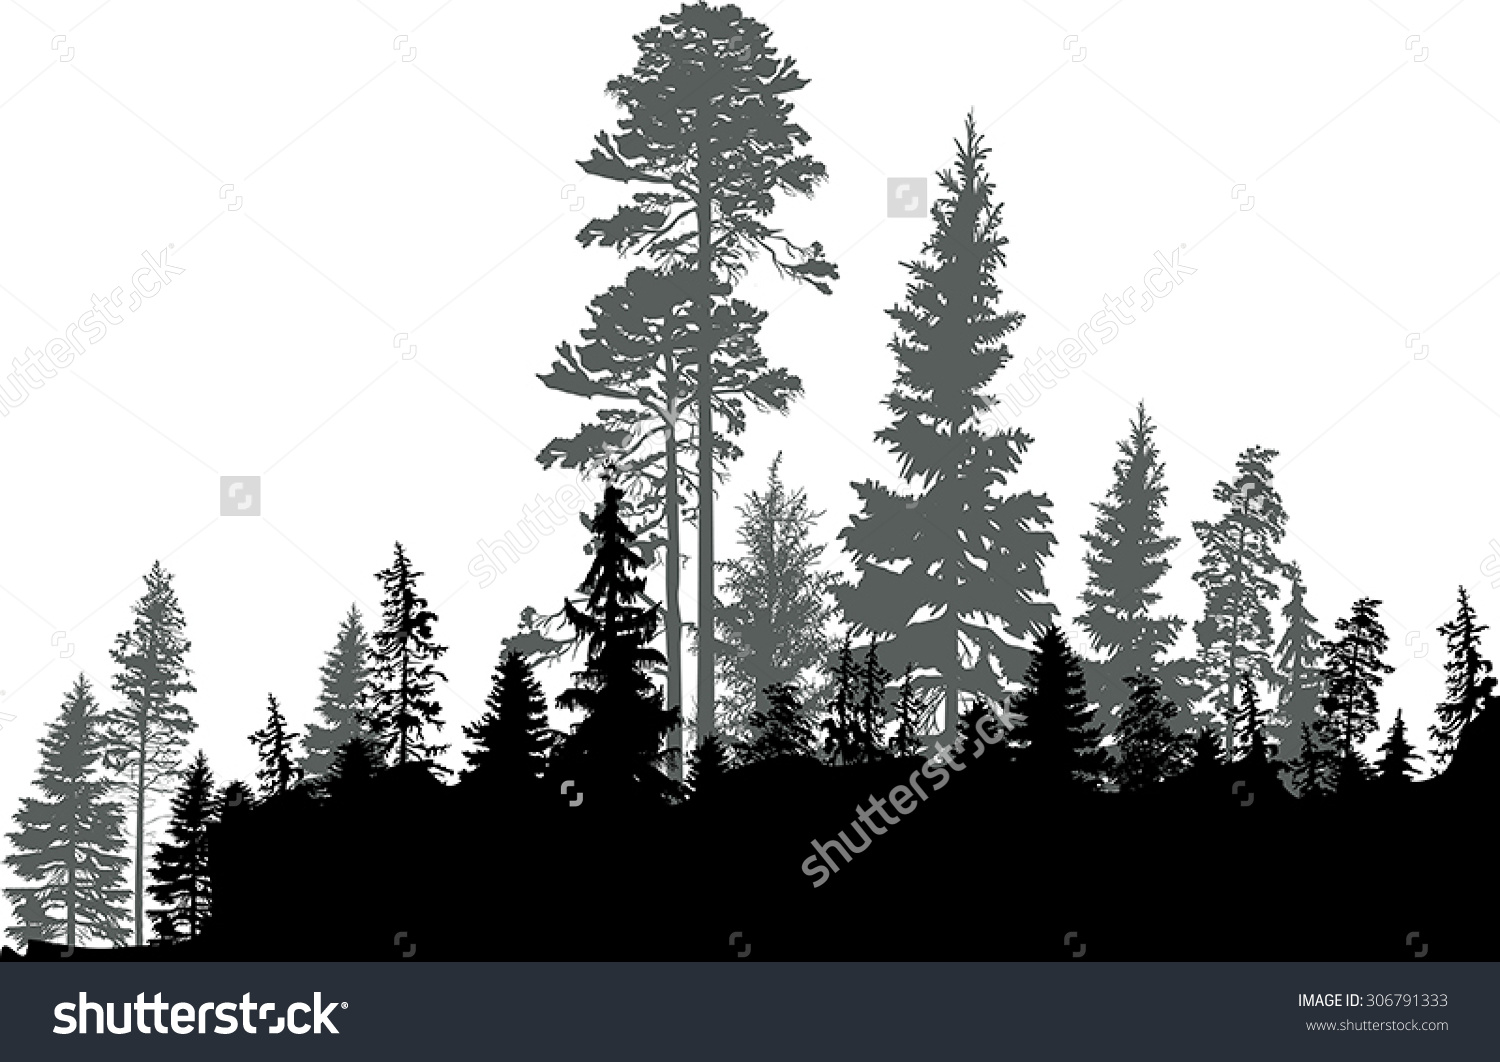 1500x1062 Forest Clipart Dark Forest Free Collection Download And Share